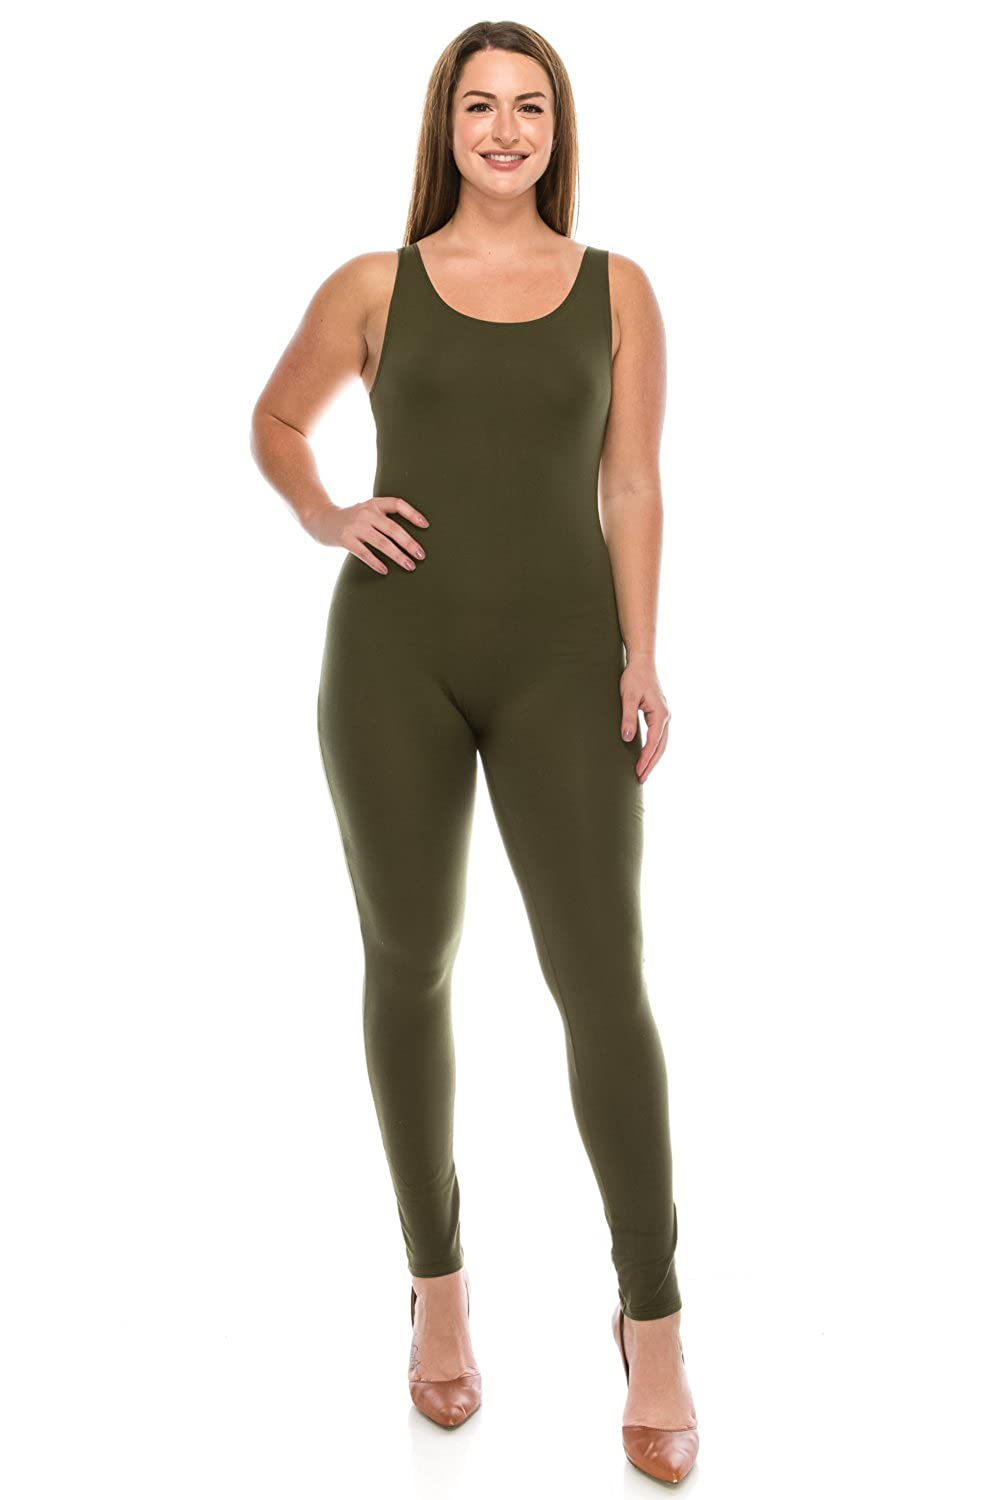 Amazon.com  The Classic Womens Stretch Cotton Sleeveless One Piece Unitard  Jumpsuit Bodysuits Small to Plus  Clothing a9d39cae6